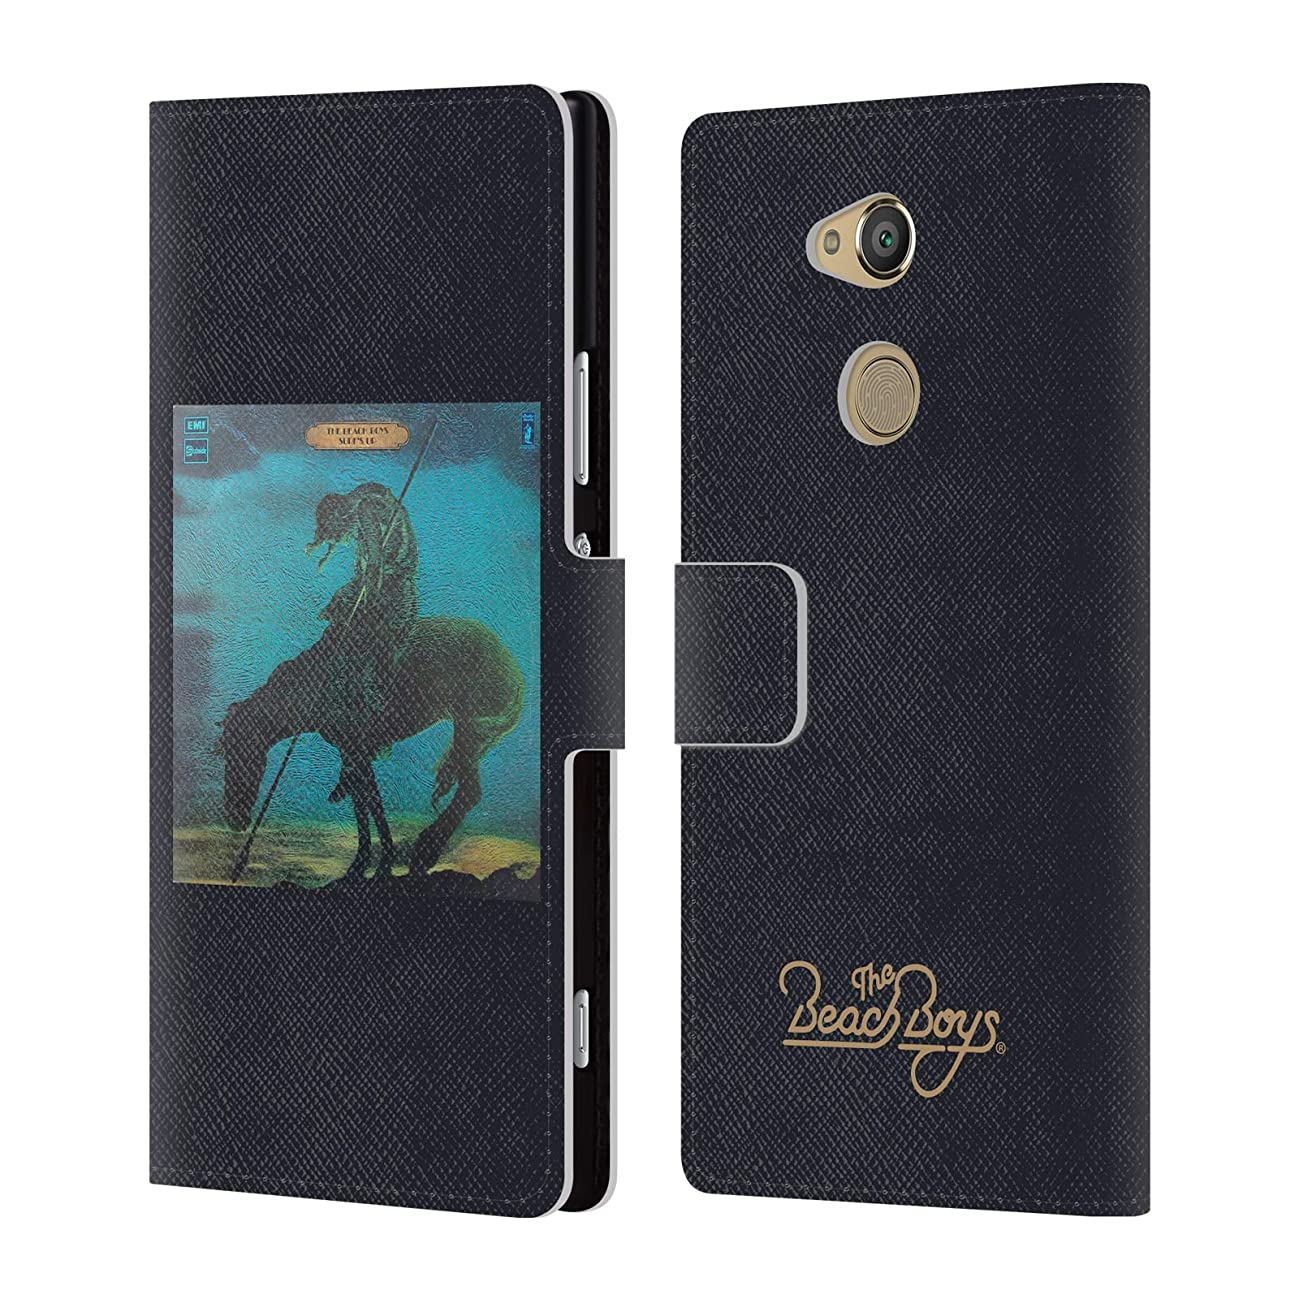 Official The Beach Boys Surfs Up Album Cover Art Leather Book Wallet Case Cover for Sony Xperia XA2 Ultra